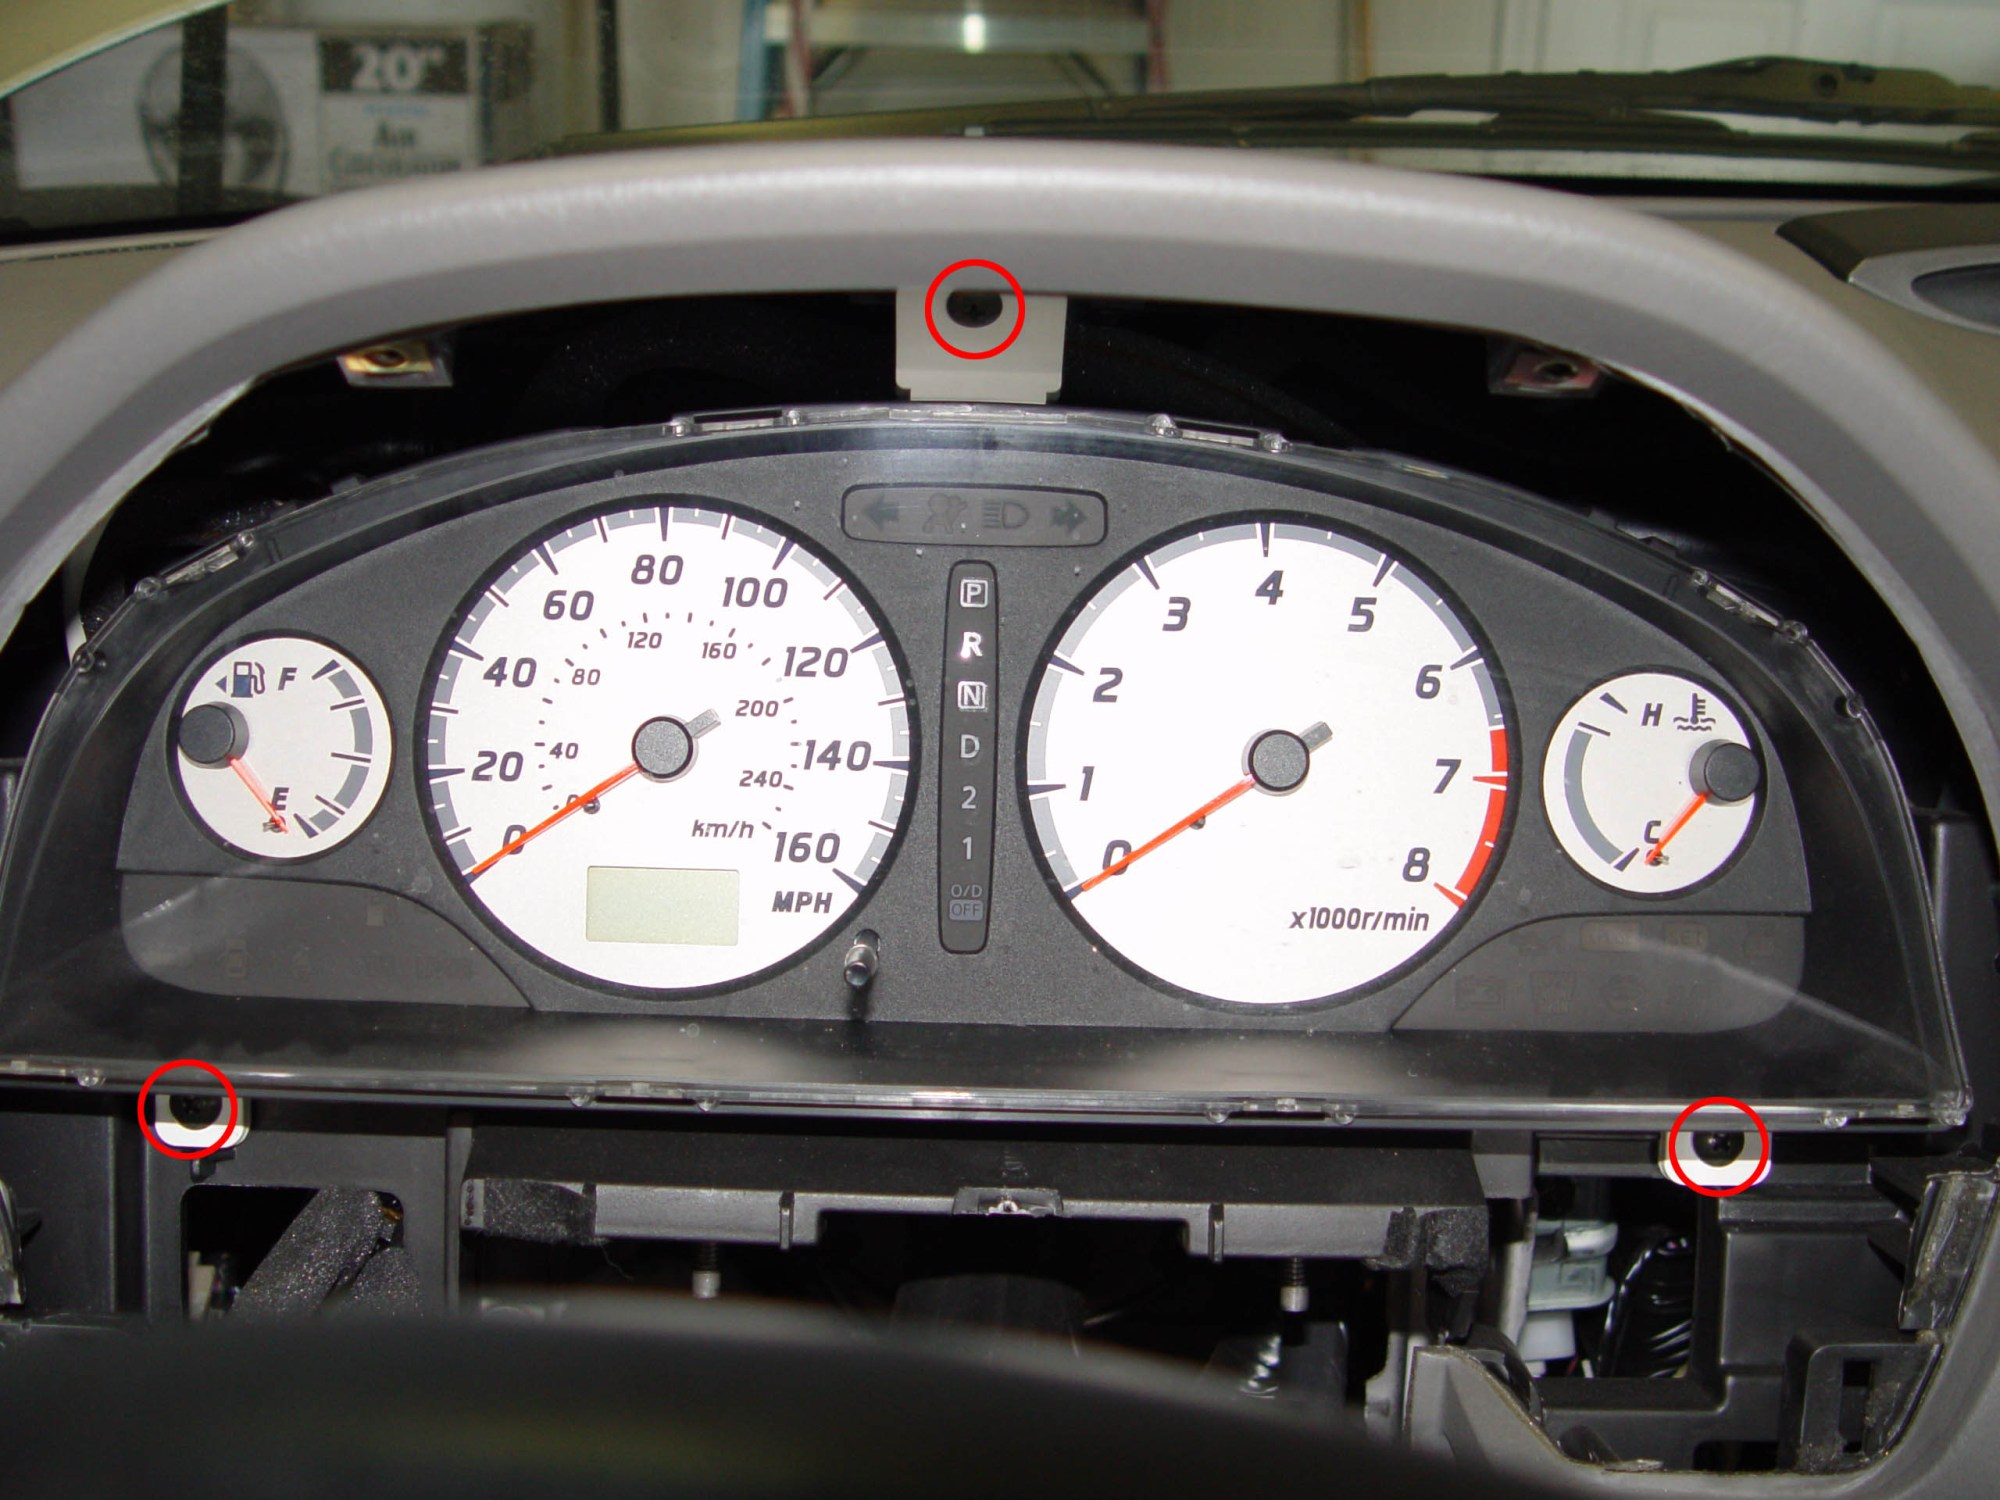 hight resolution of 9 pull the instrument cluster towards the rear of the car on the back side there are 3 connectors 2 are brown and 1 is white